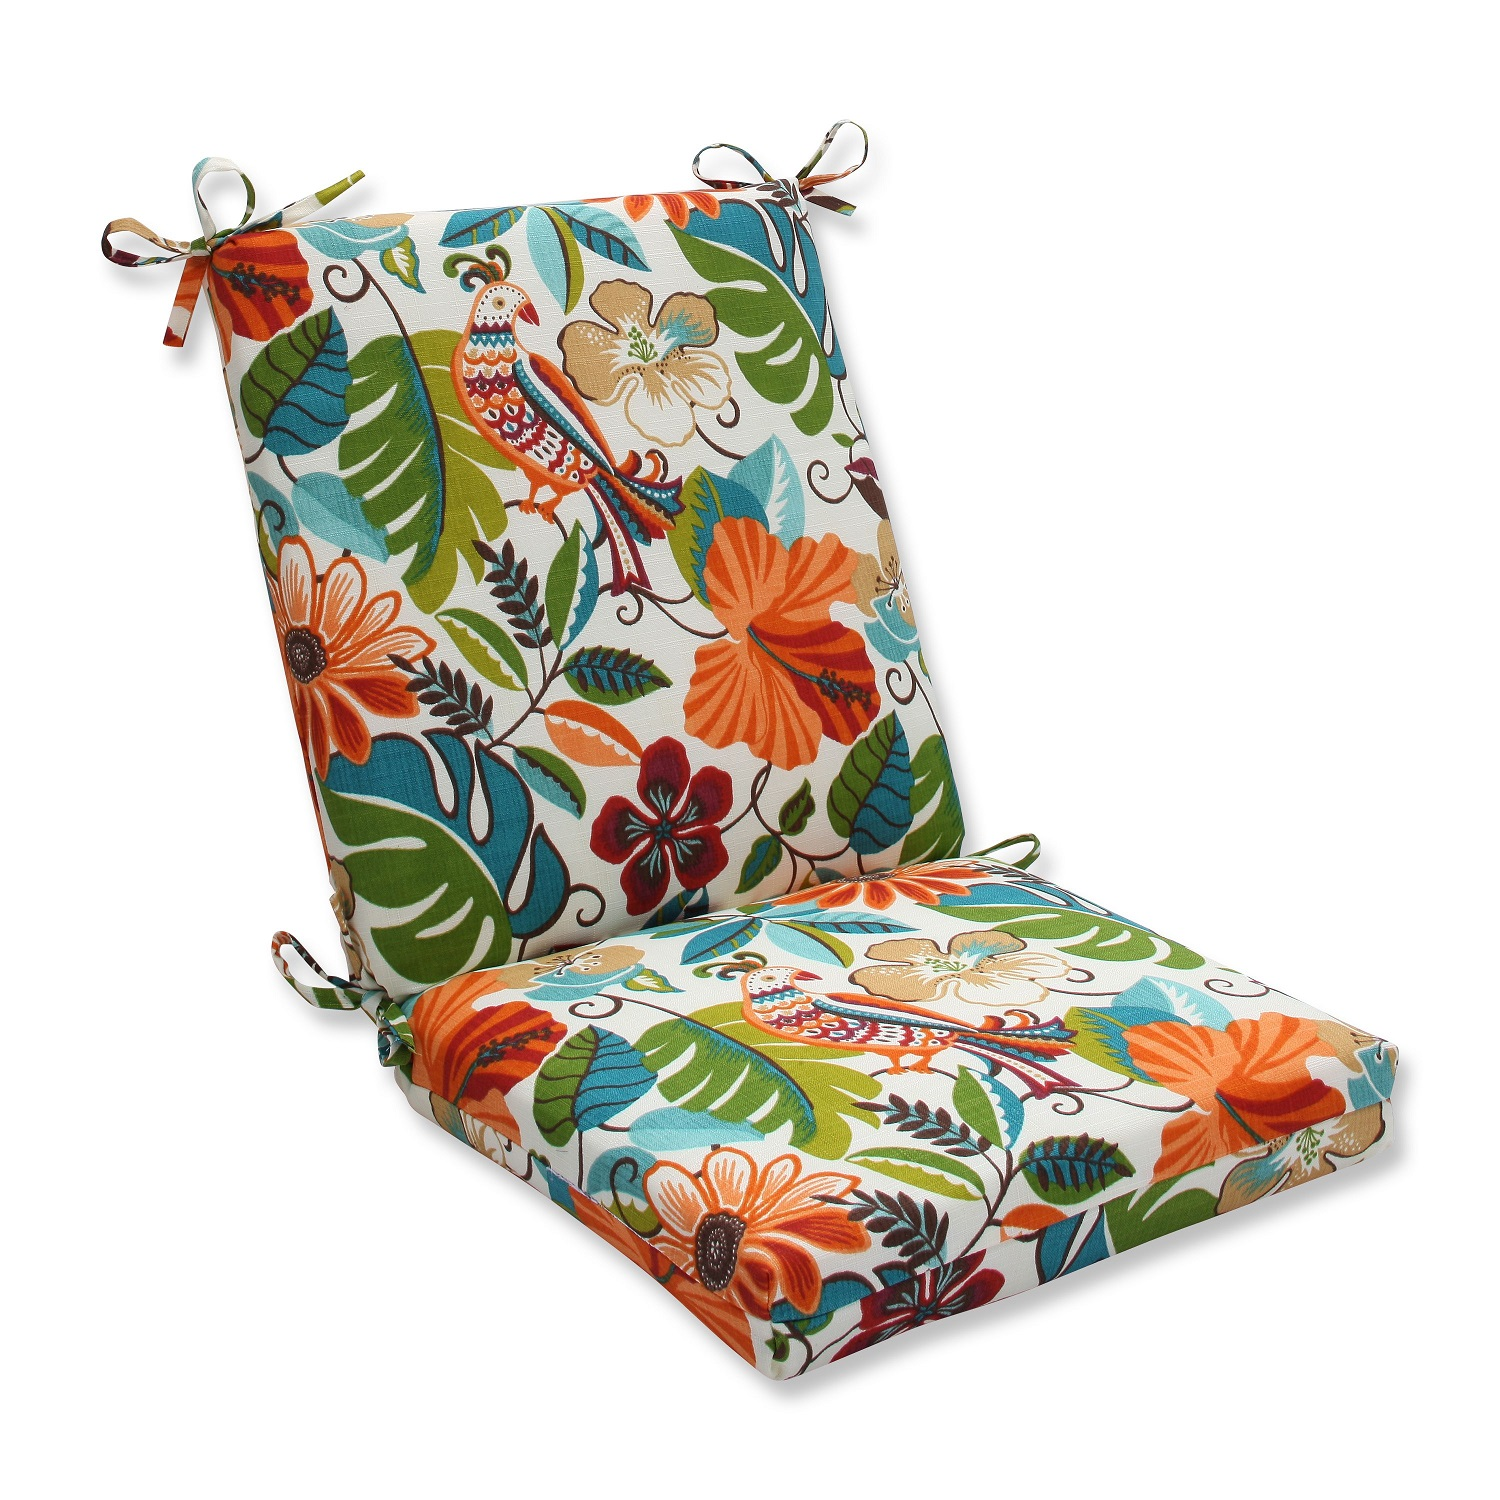 36 5 orange and green floral outdoor patio chair cushions with back 19